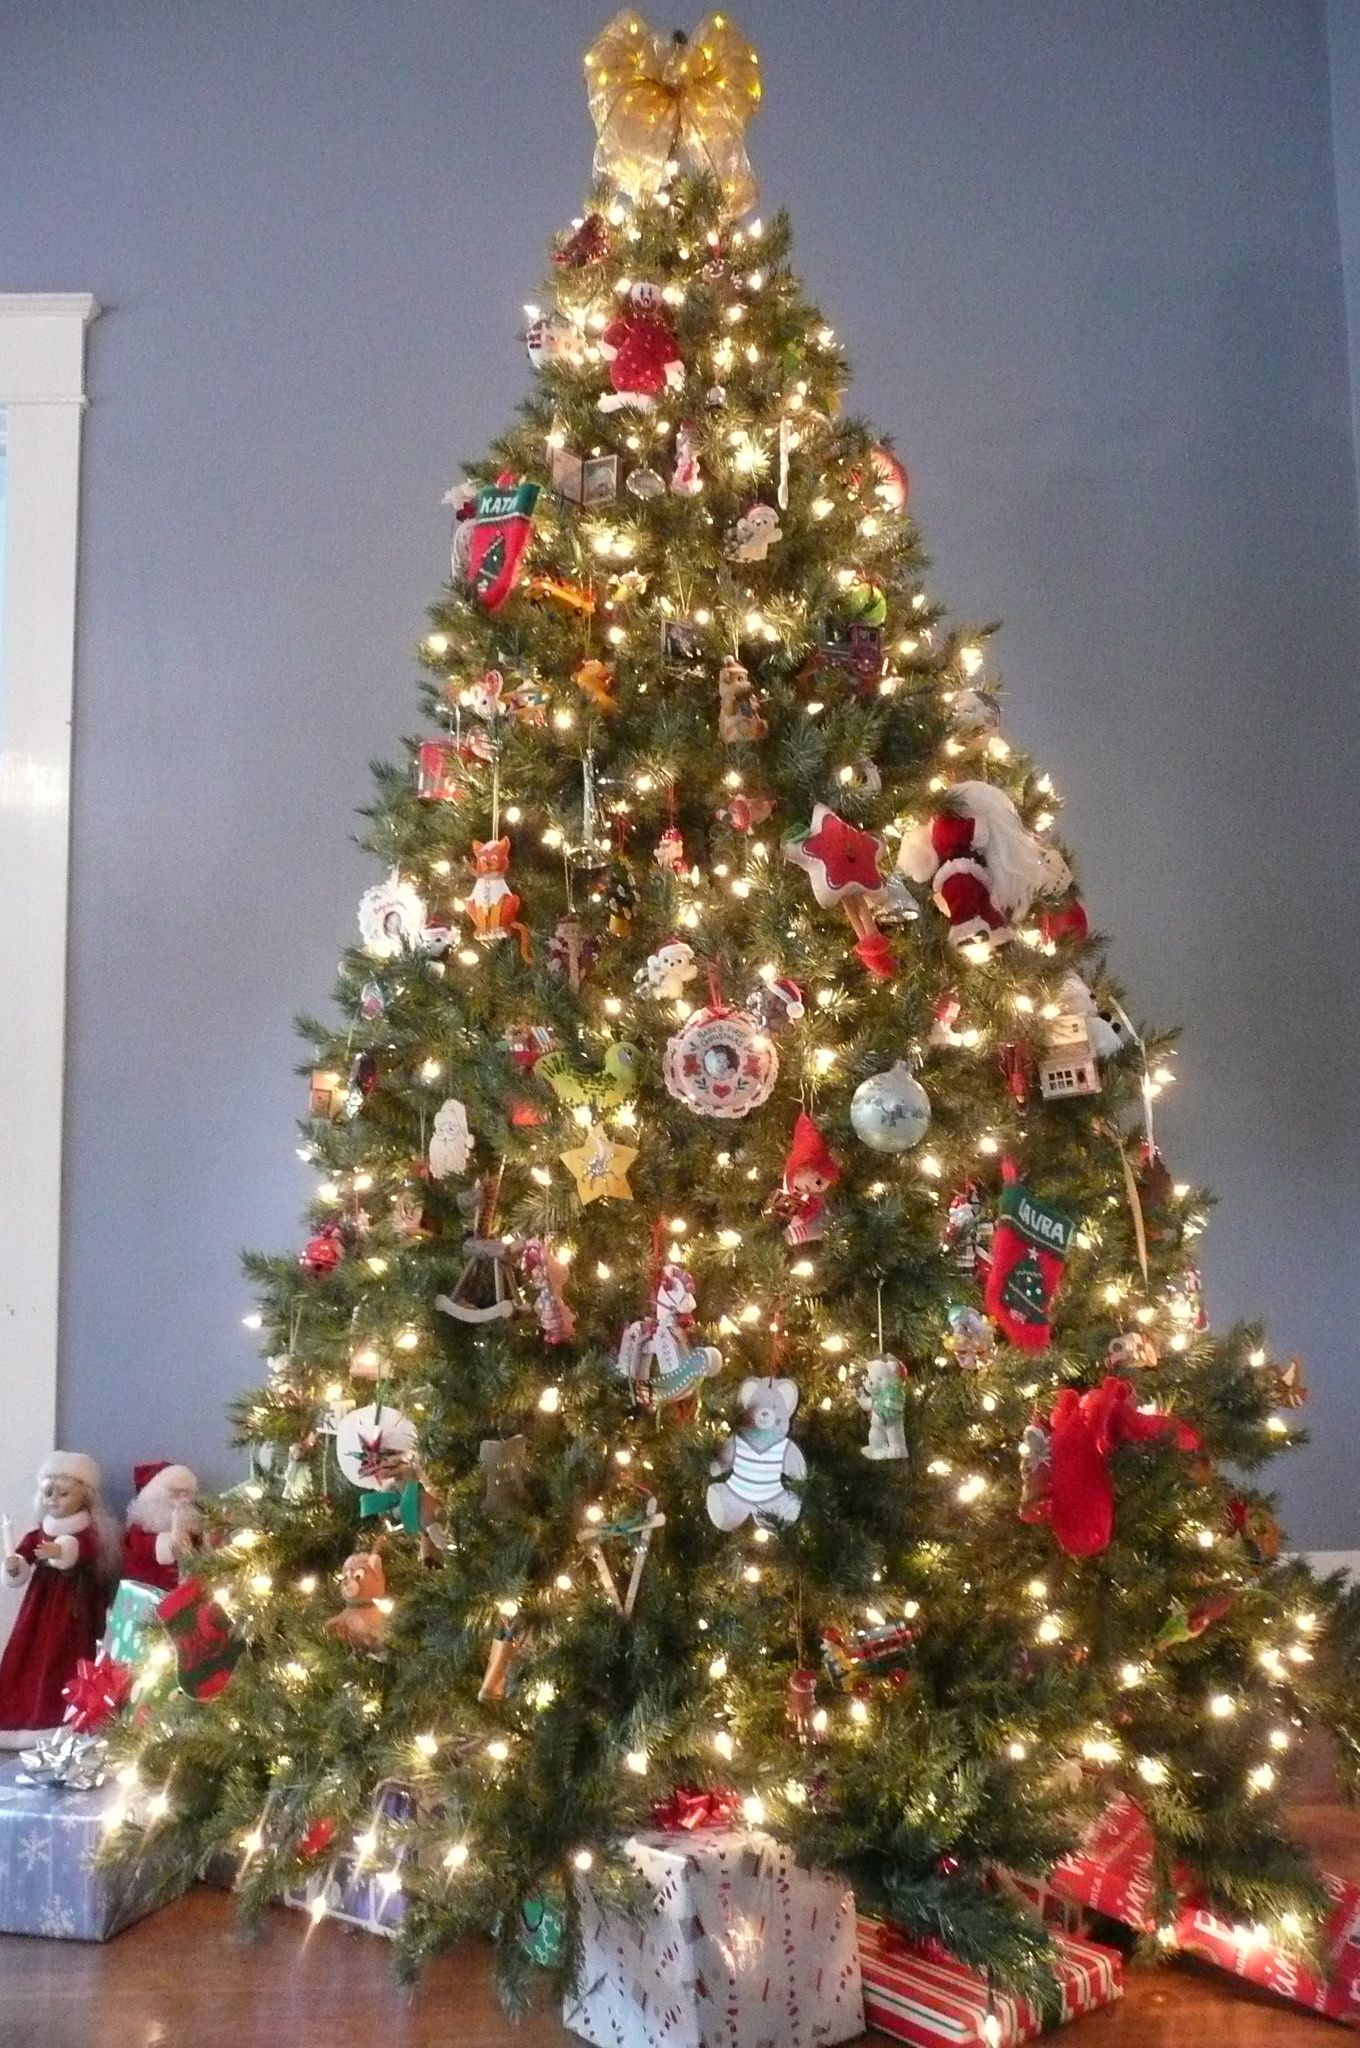 The Ideal Christmas Tree One Without A Set Theme